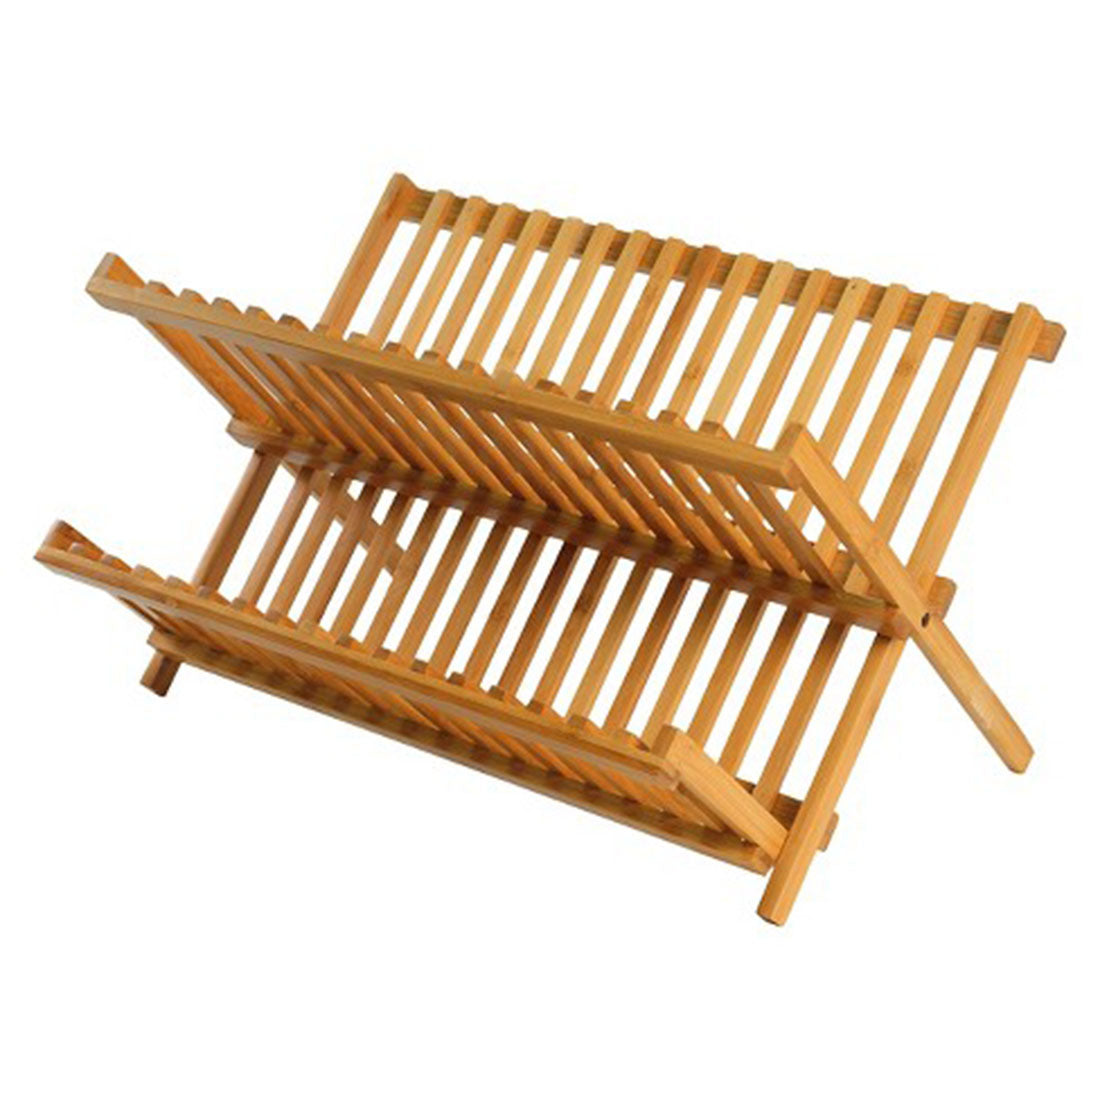 Wooden Foldable Sink Dish Drainer Plate Dryer Rack Holder